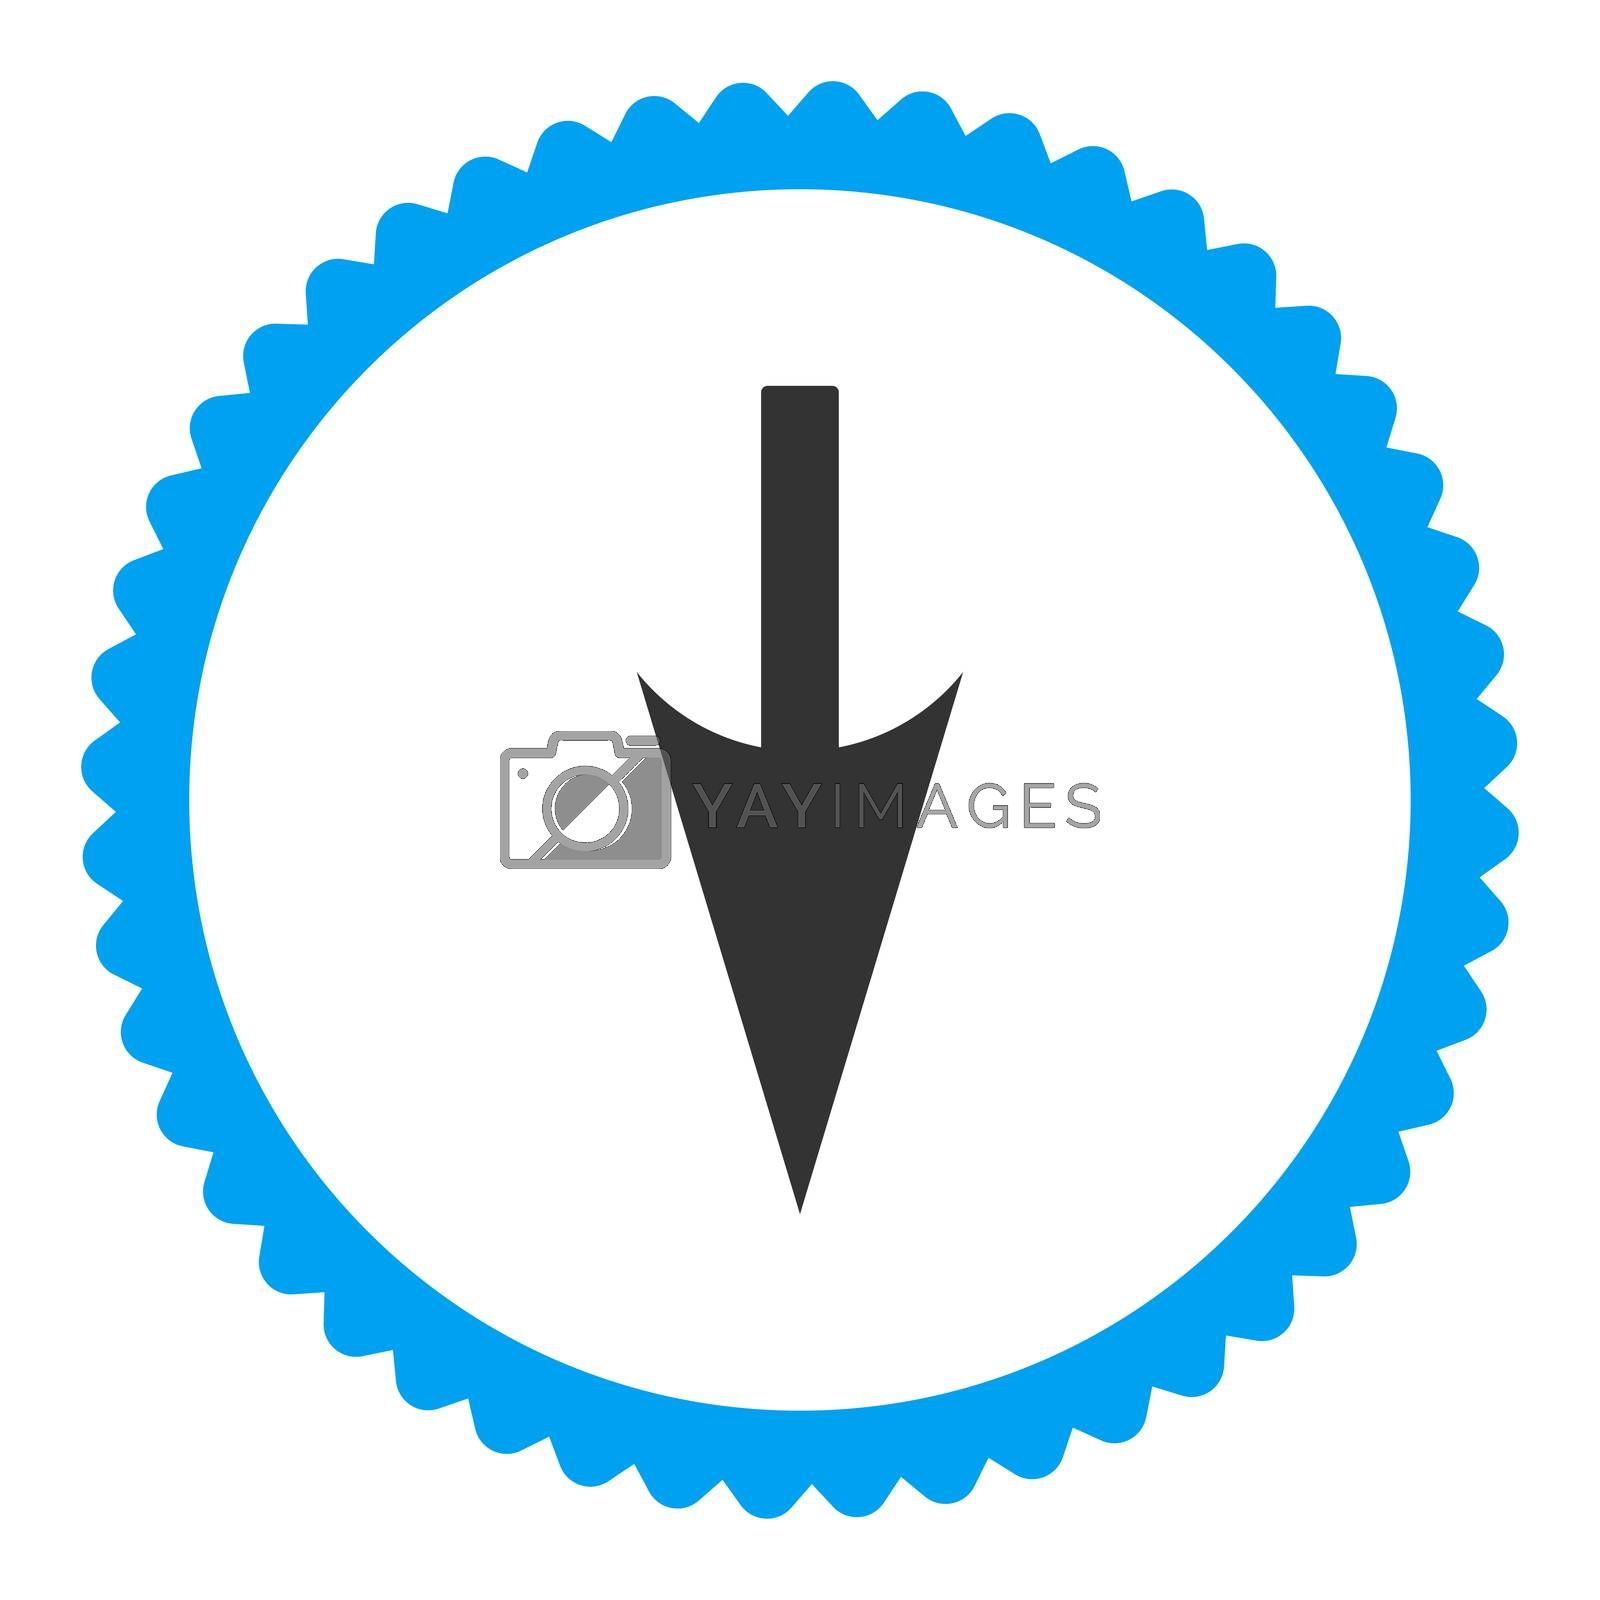 Sharp Down Arrow flat blue and gray colors round stamp icon by Aha-Soft